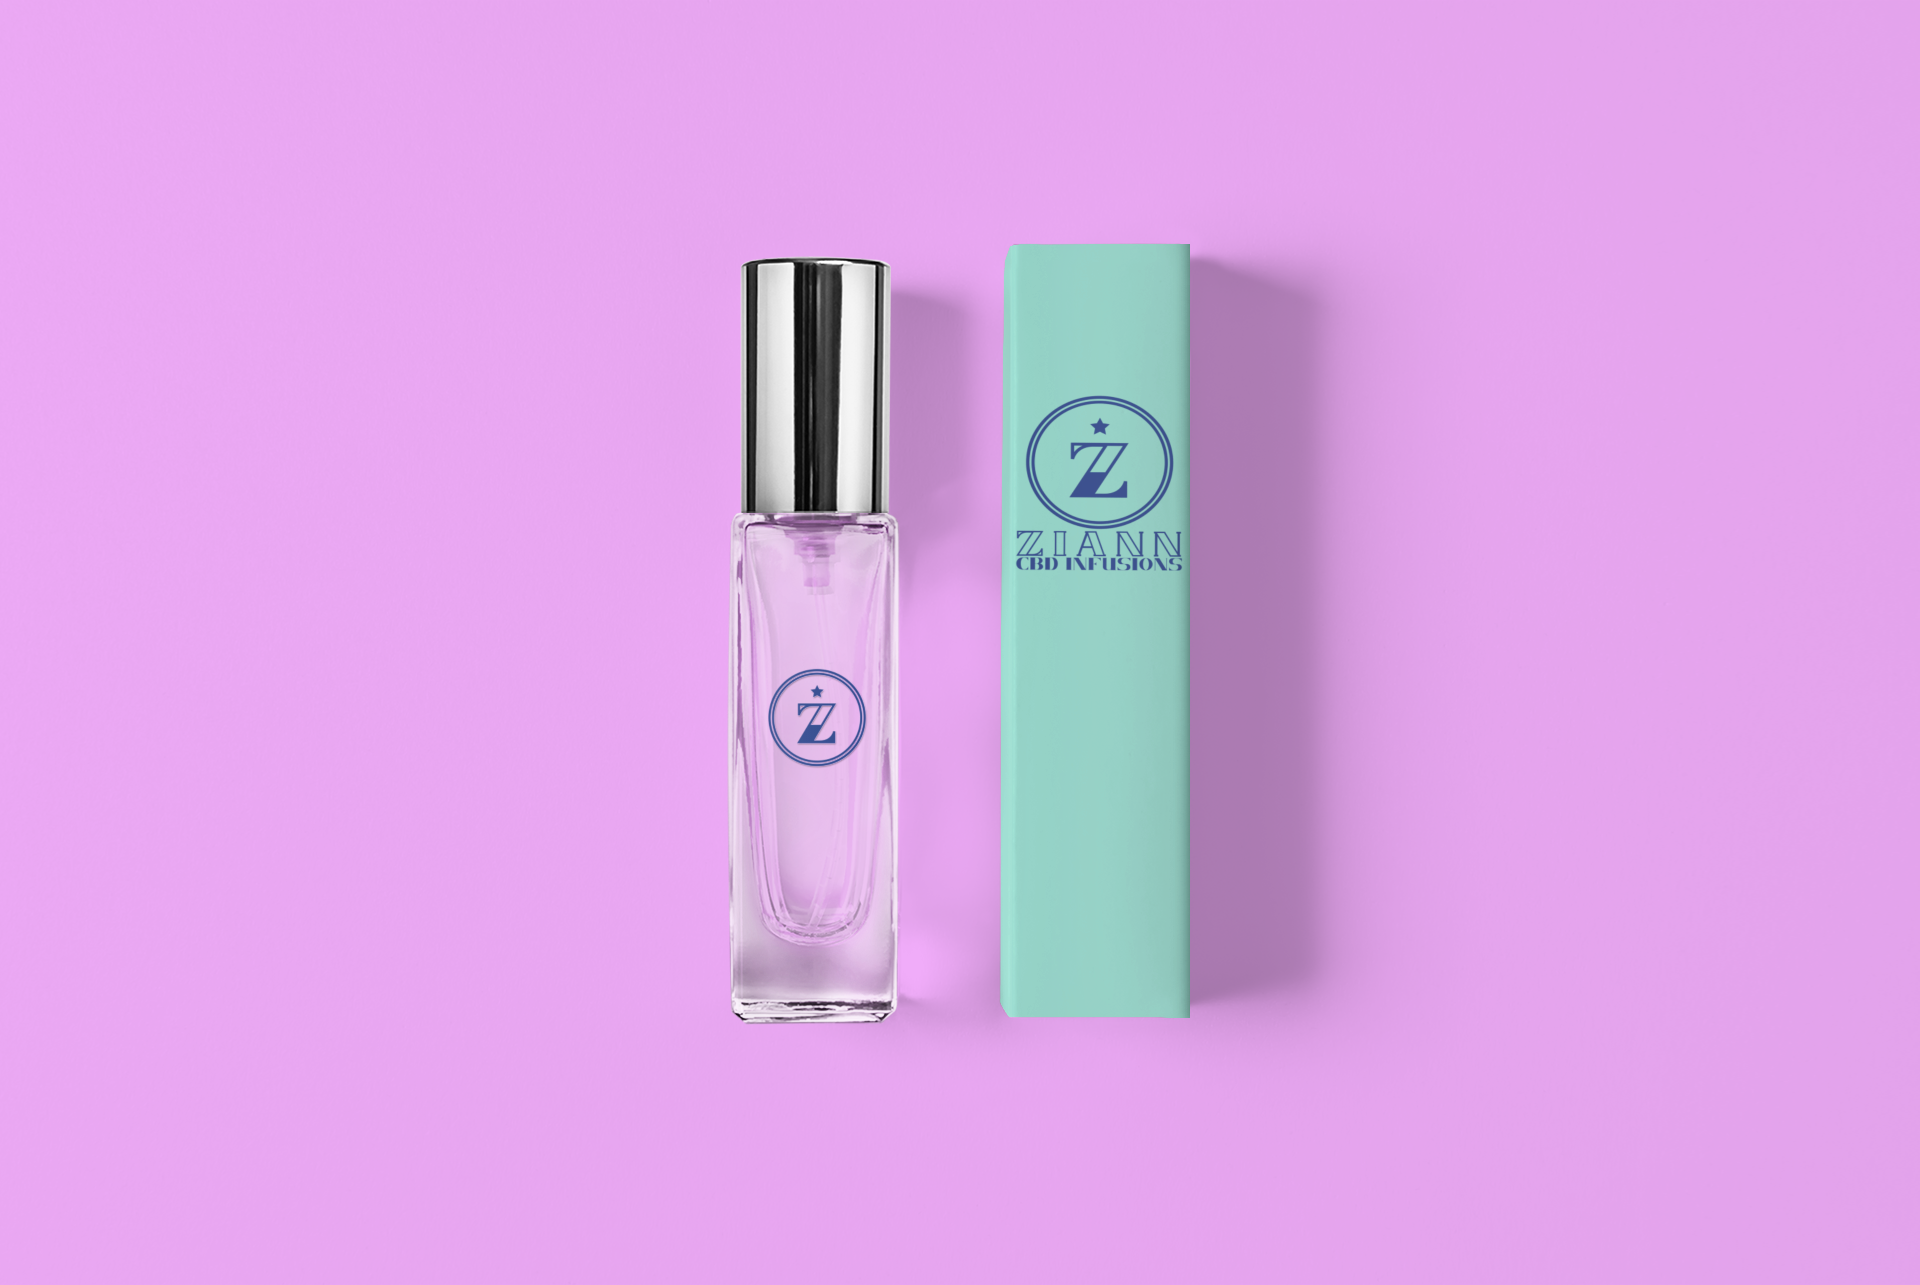 mockup-featuring-a-slim-perfume-bottle-l